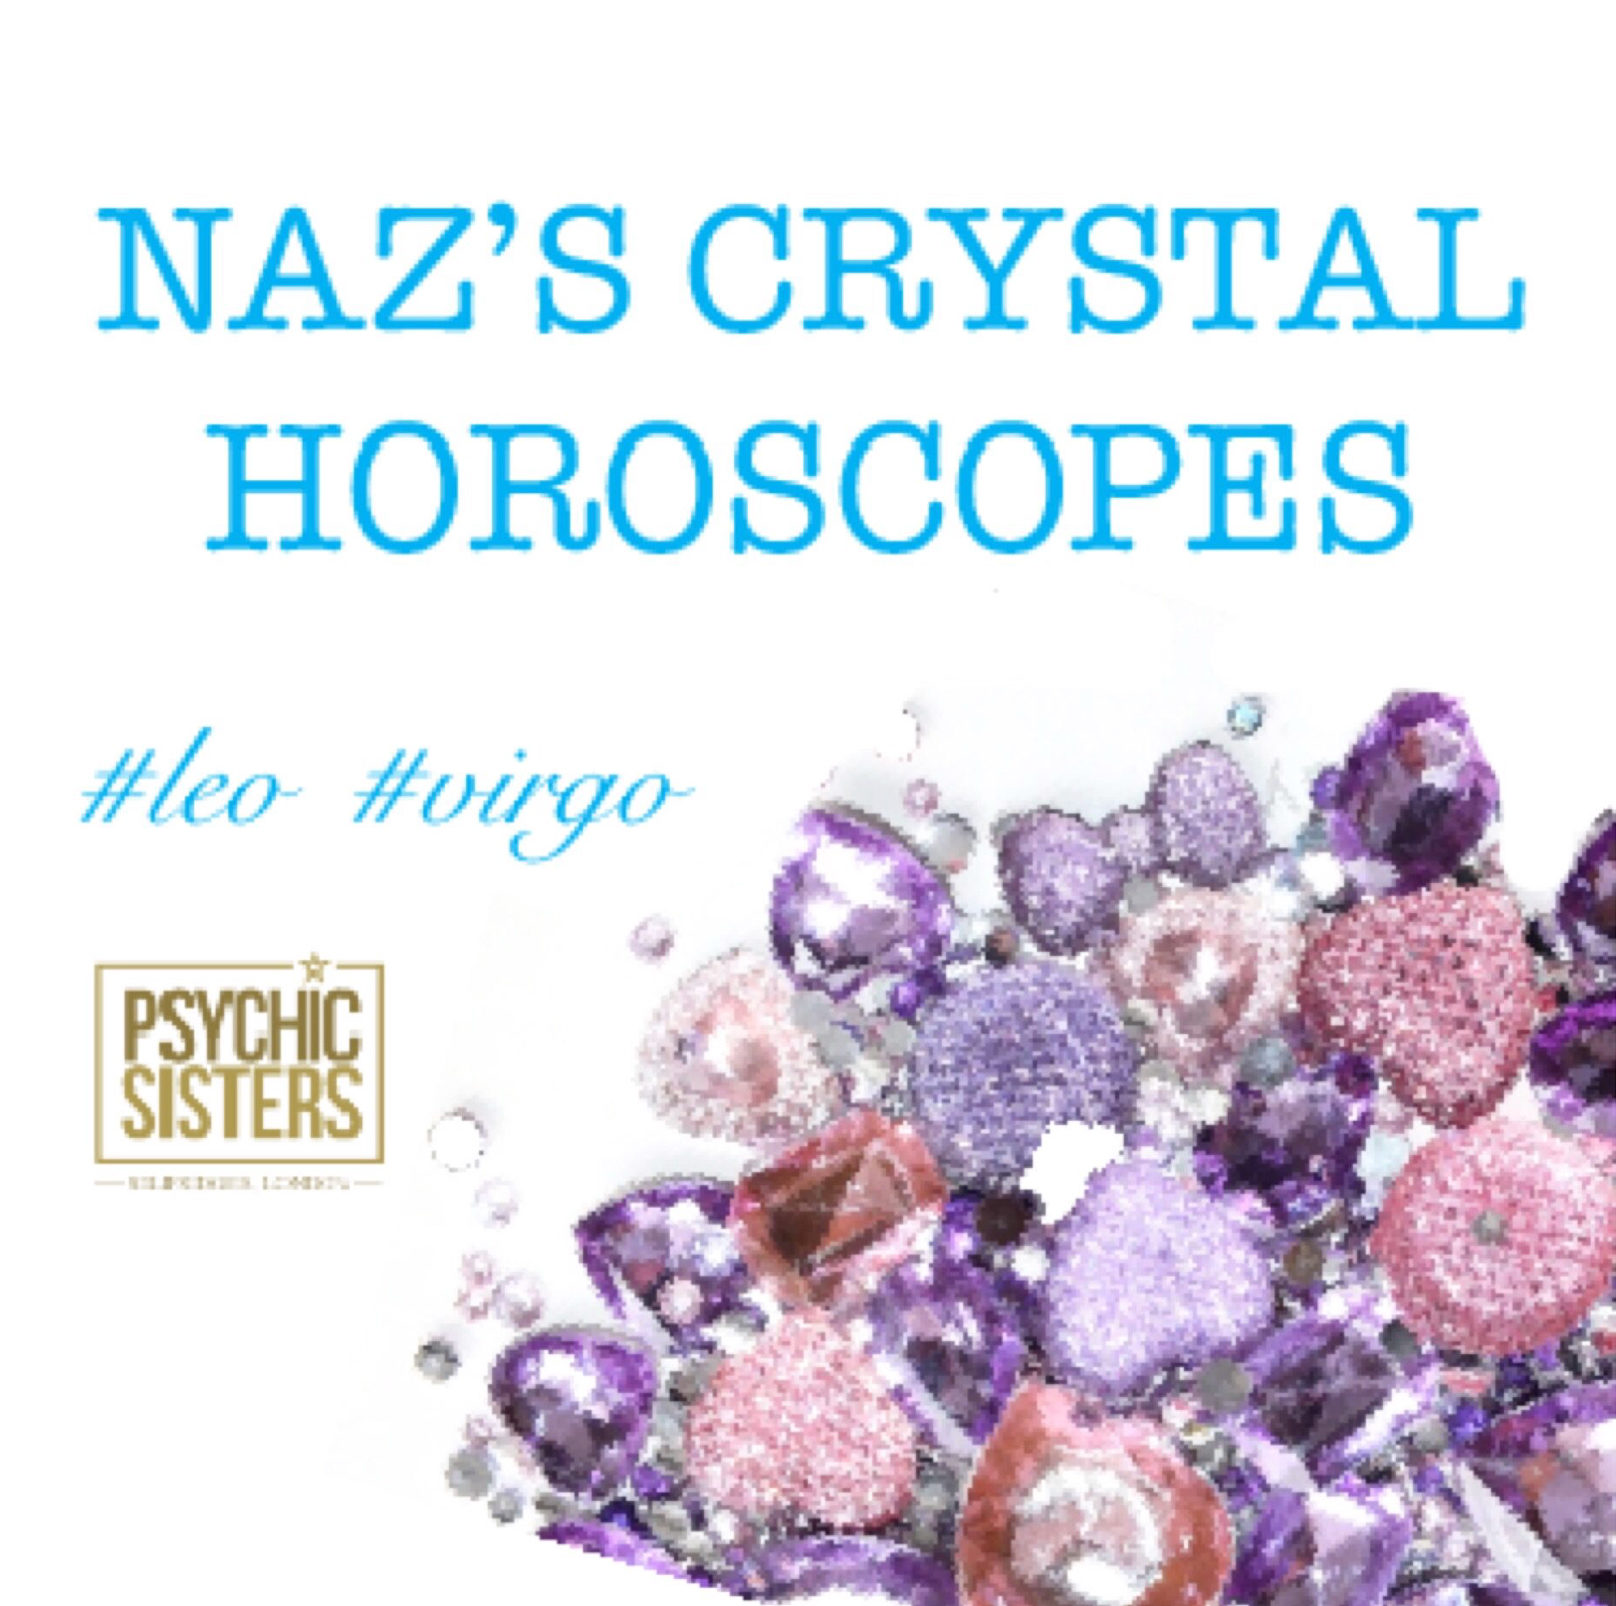 Naz's crystal horoscopes  29th July - 4th August 2018